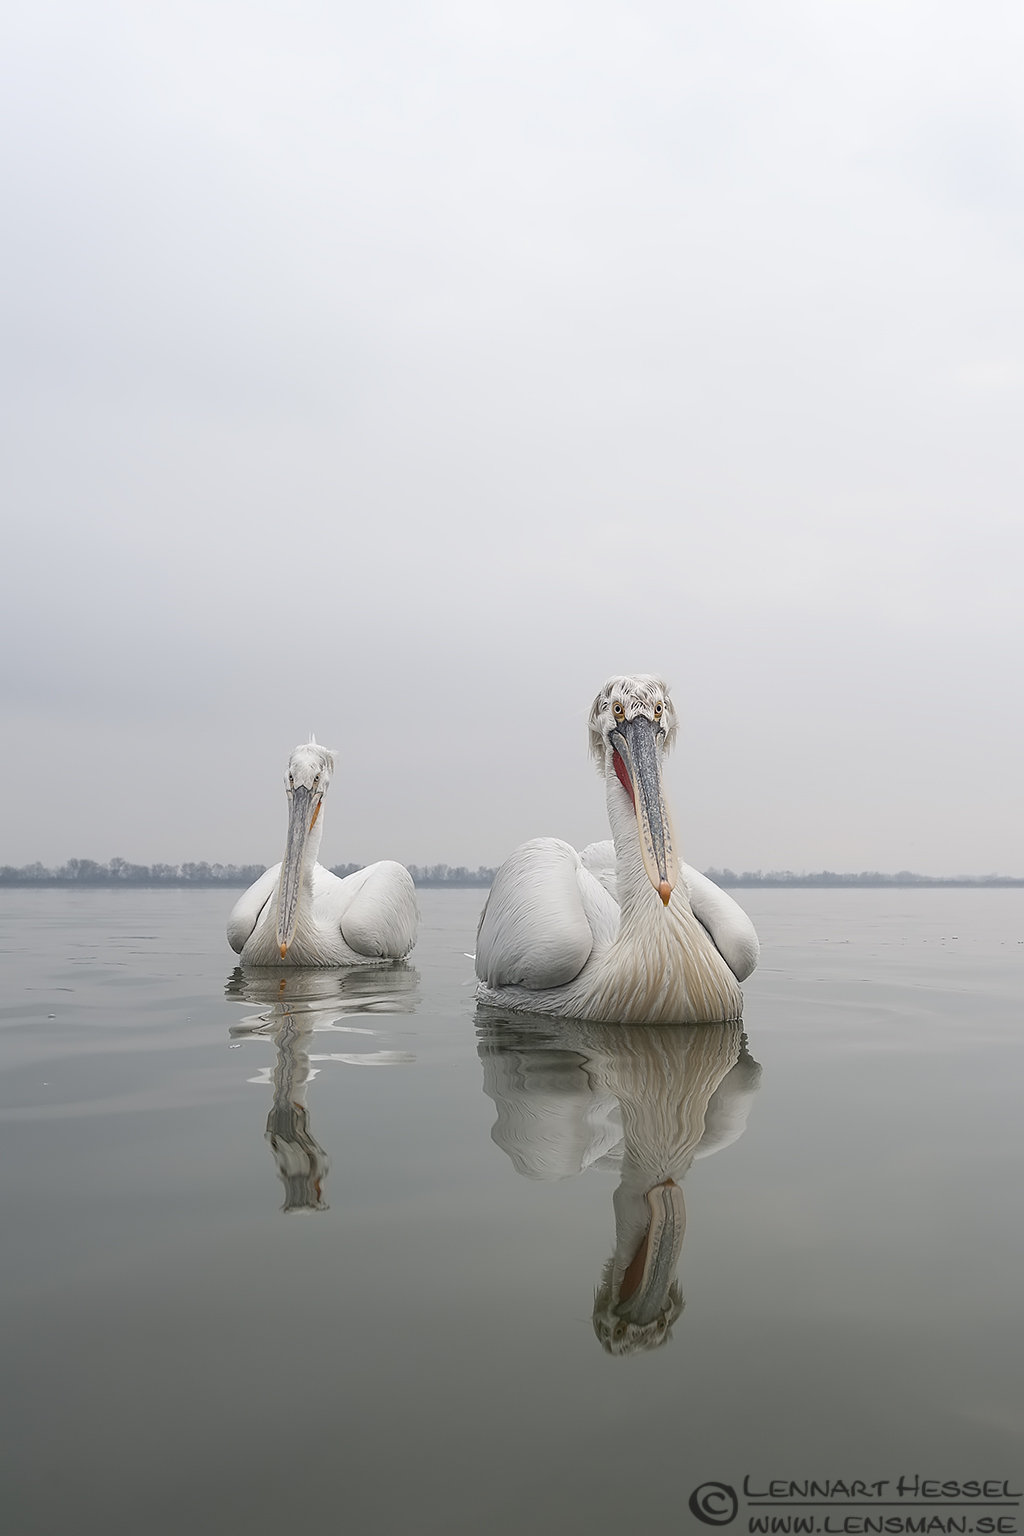 Dalmatian Pelican Lake Kerkini National Geographic